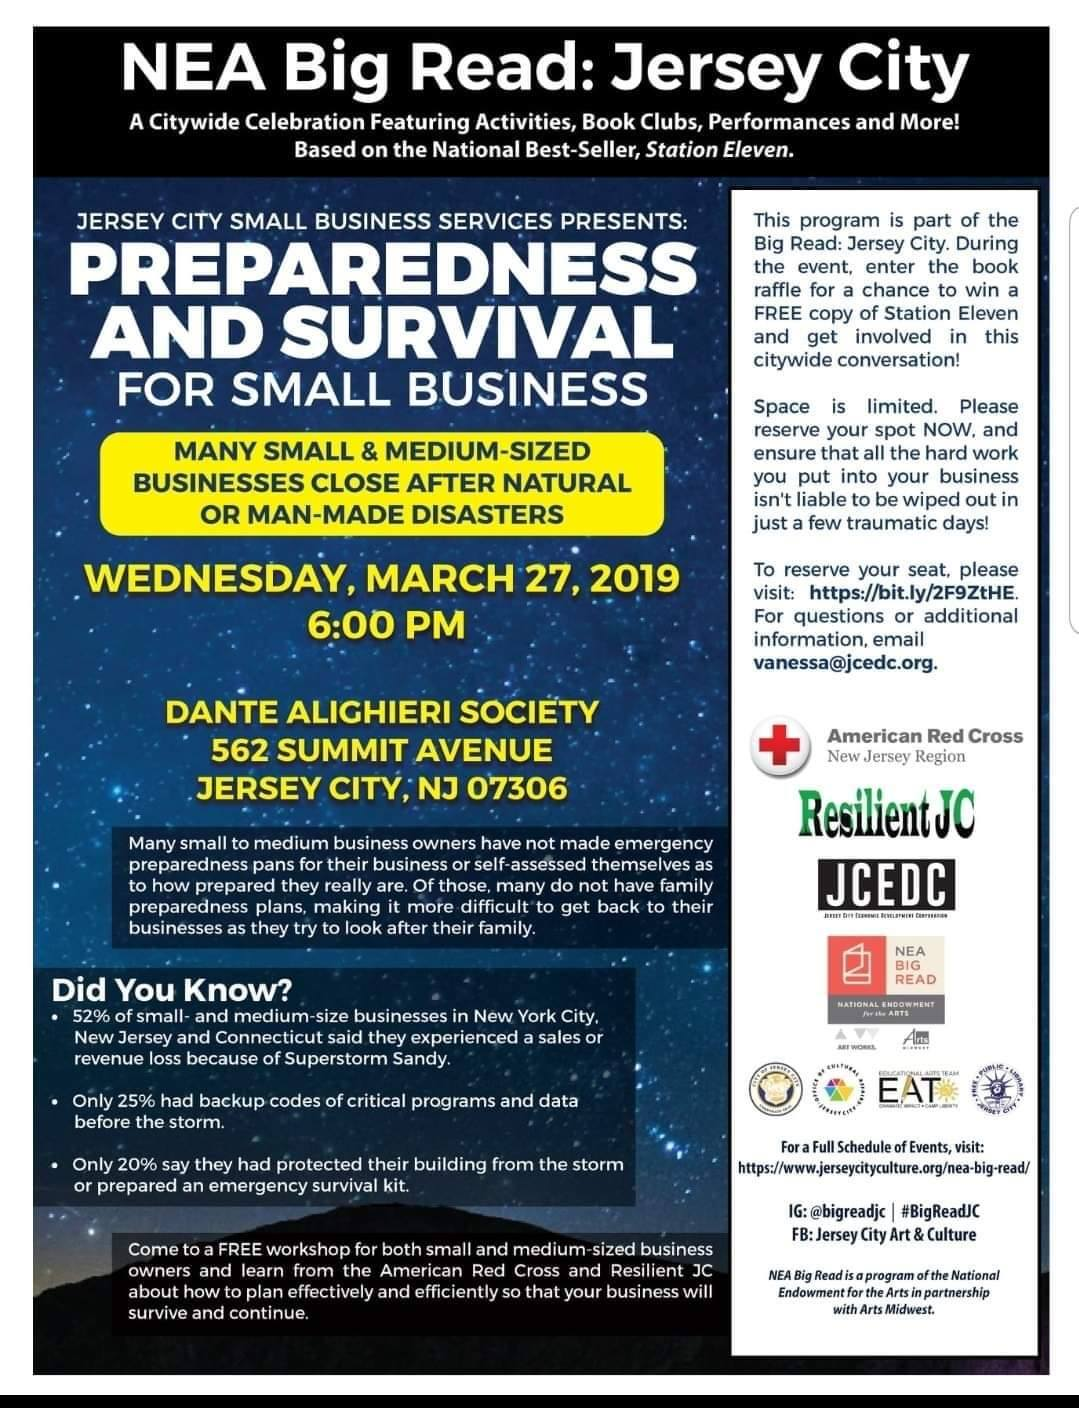 Preparedness and Survival Small Business Workshop